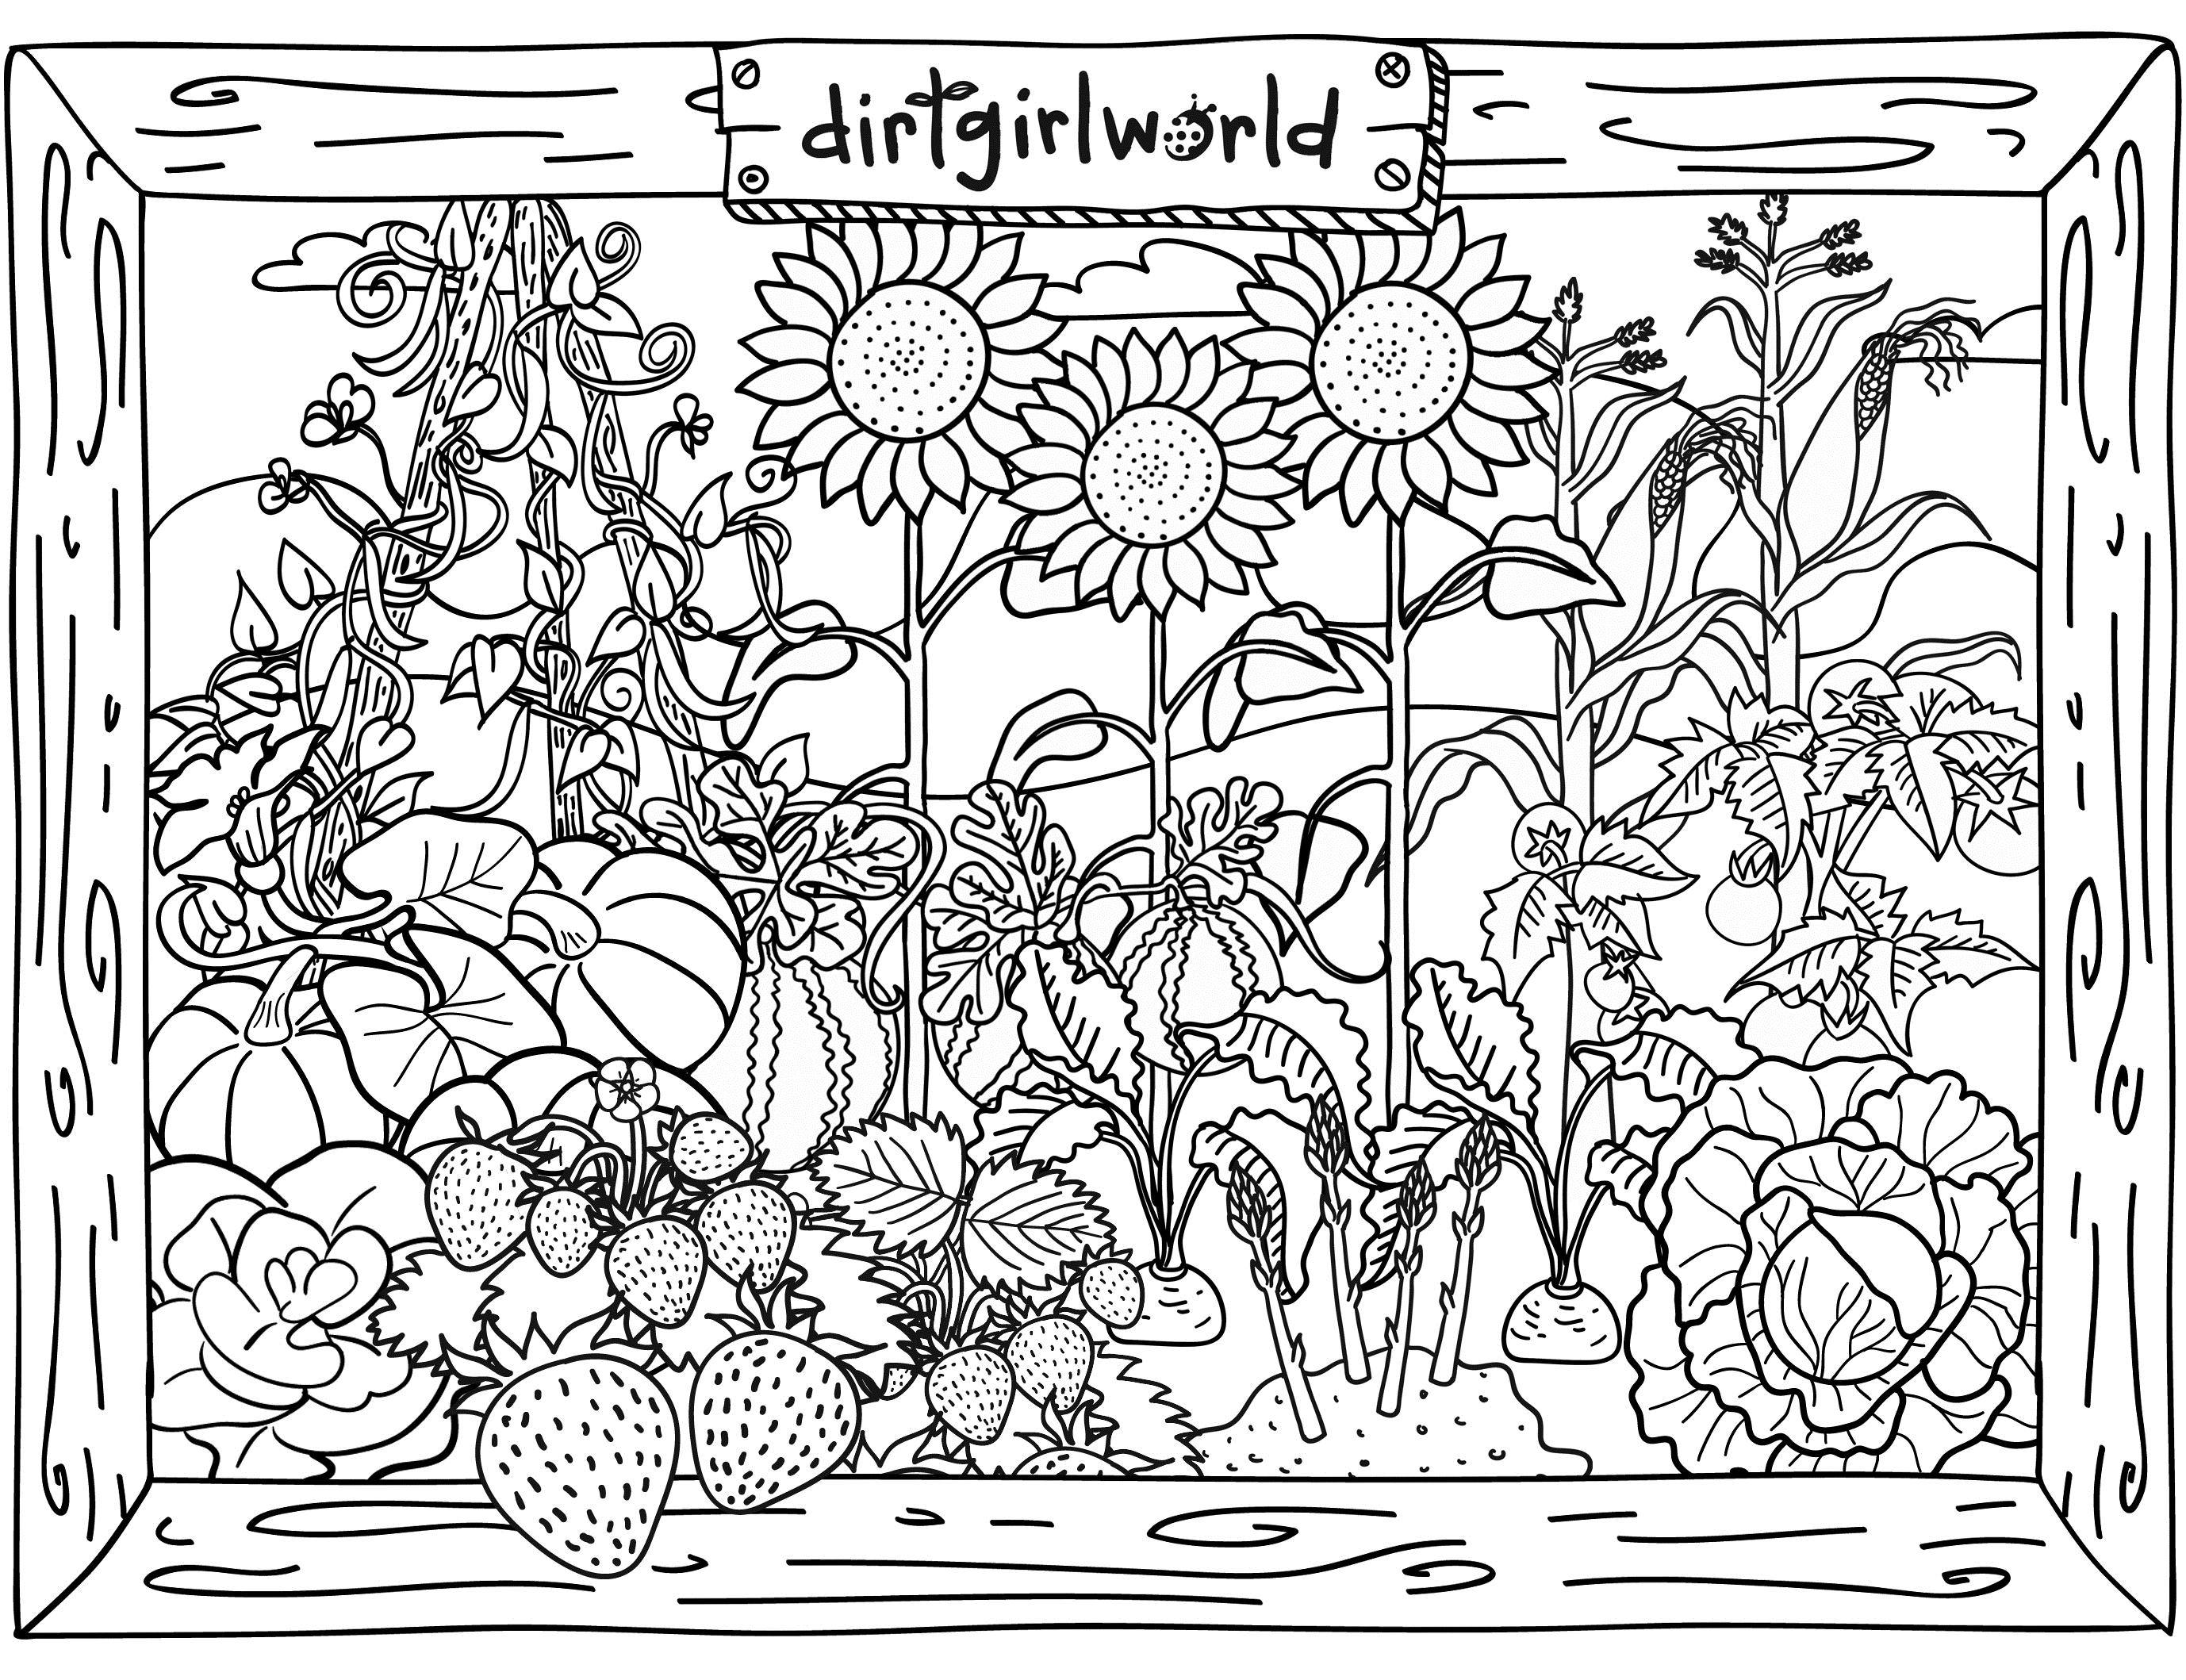 find printable adult coloring pages - 6 best images of adult printable activity sheets